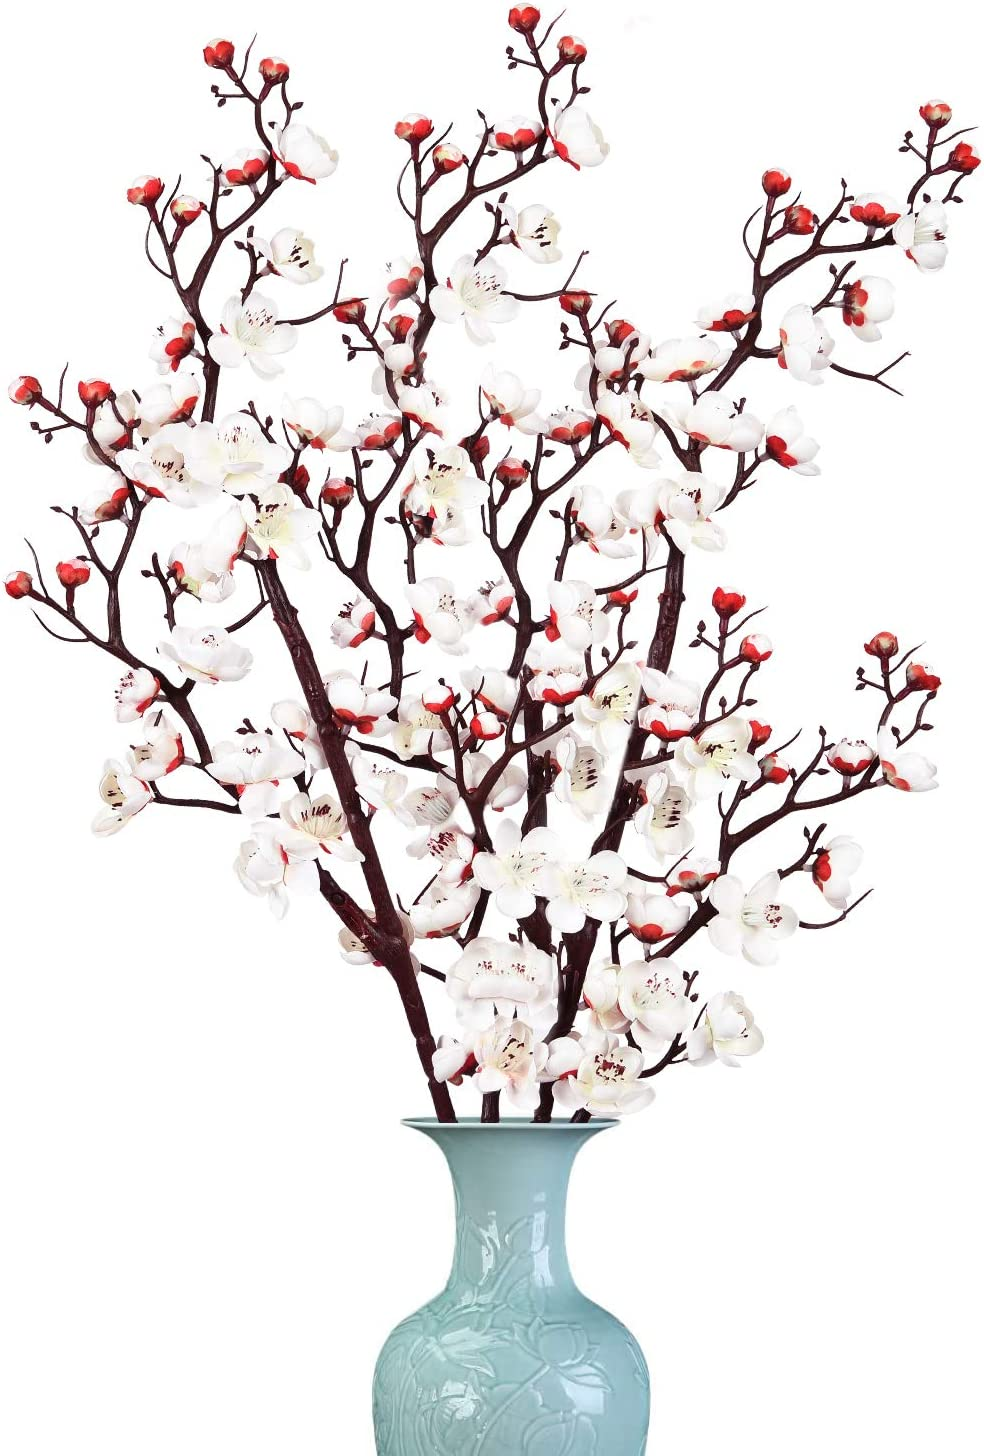 Dolicer 2 Pack Plum Blossom Artificial Flowers Simulation Flower Artificial Silk Plum Blossom Long Stem Silk Plum Blossom Branches Table Decoration Accessories Party Beach Theme Decorations